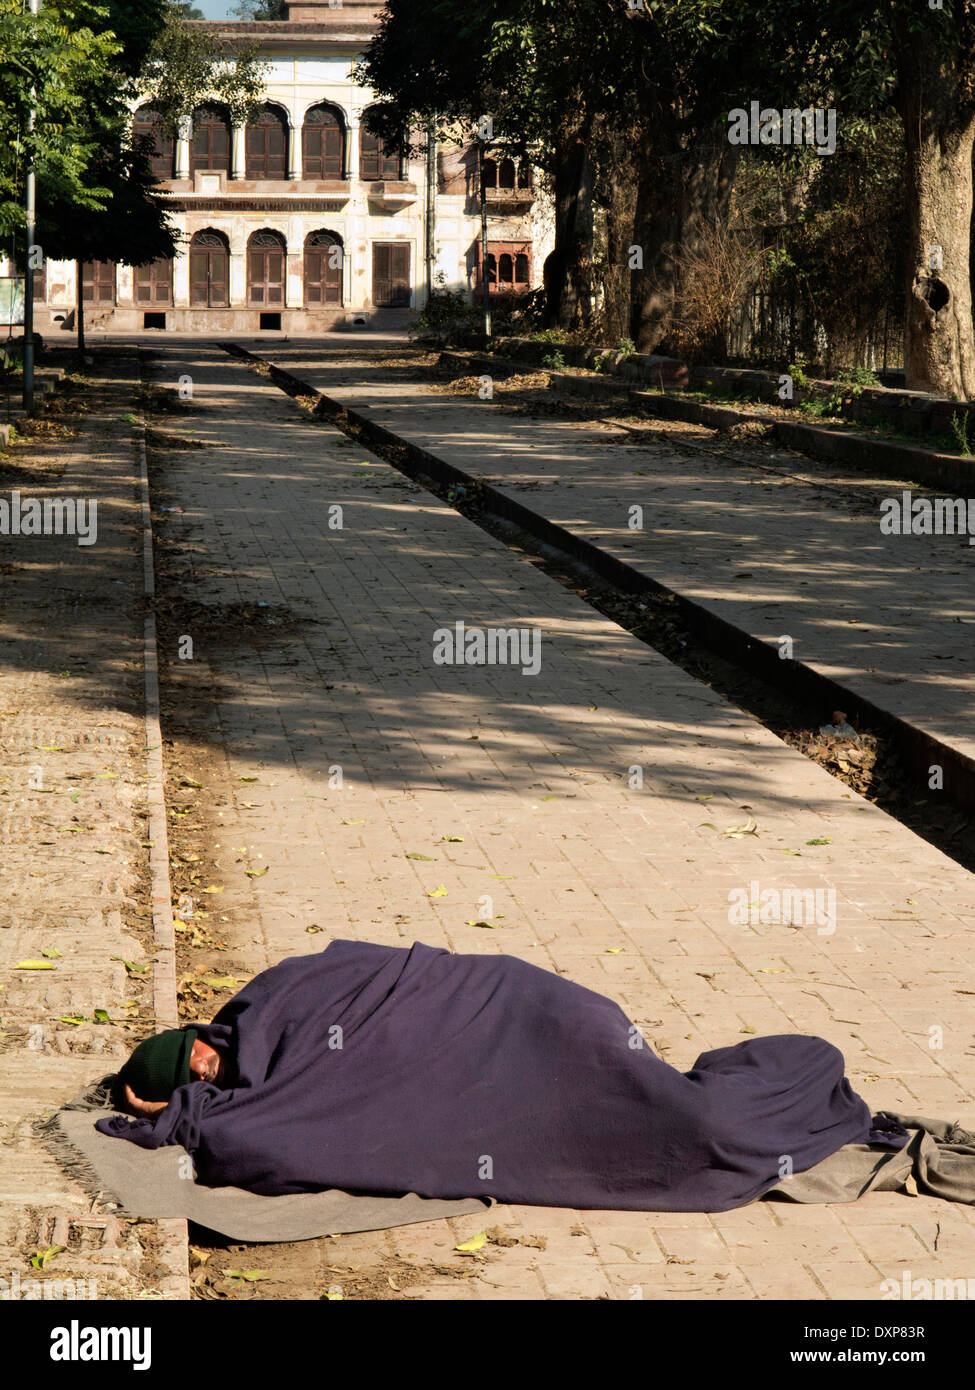 India, Punjab, Amritsar, Ram Bagh, Company Garden, homeless man asleep under blanket on road - Stock Image